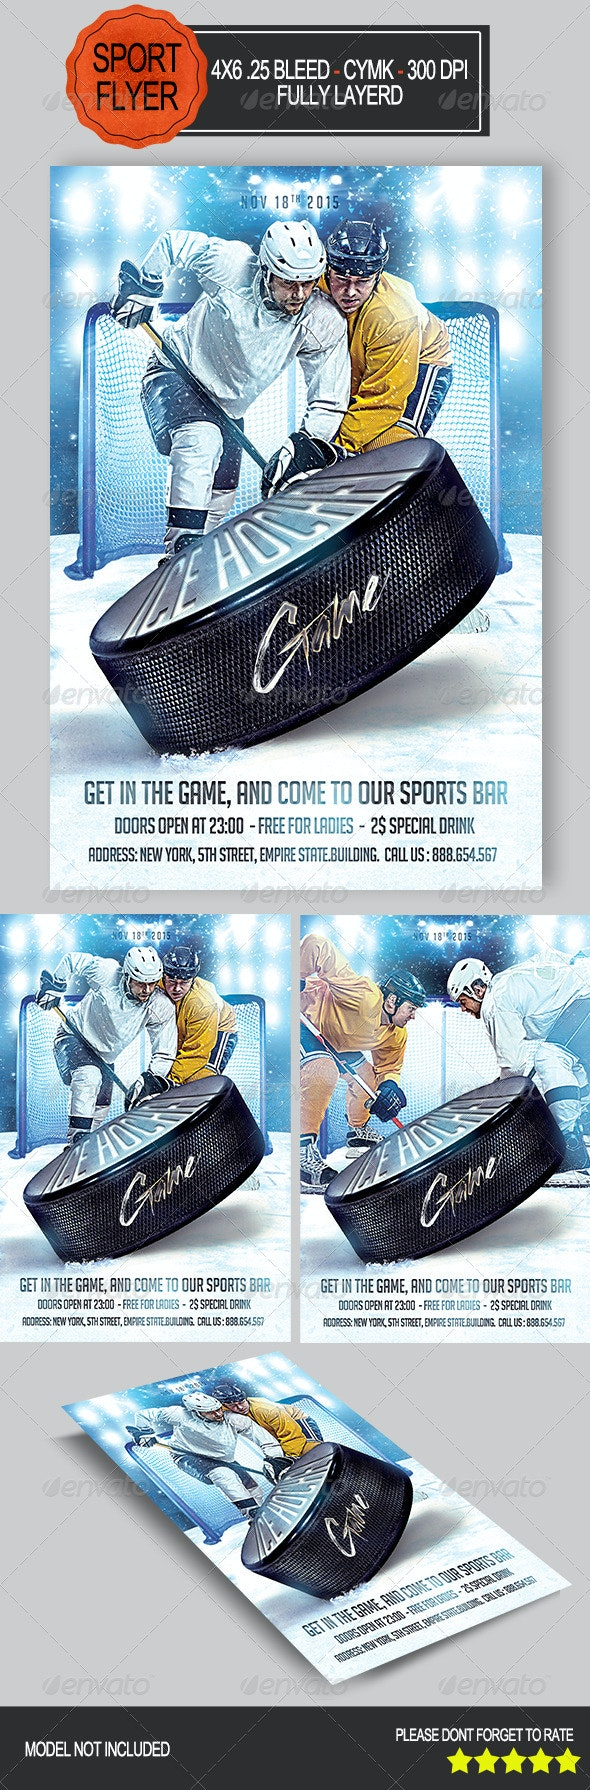 Ice Hockey Game Flyer - Sports Events